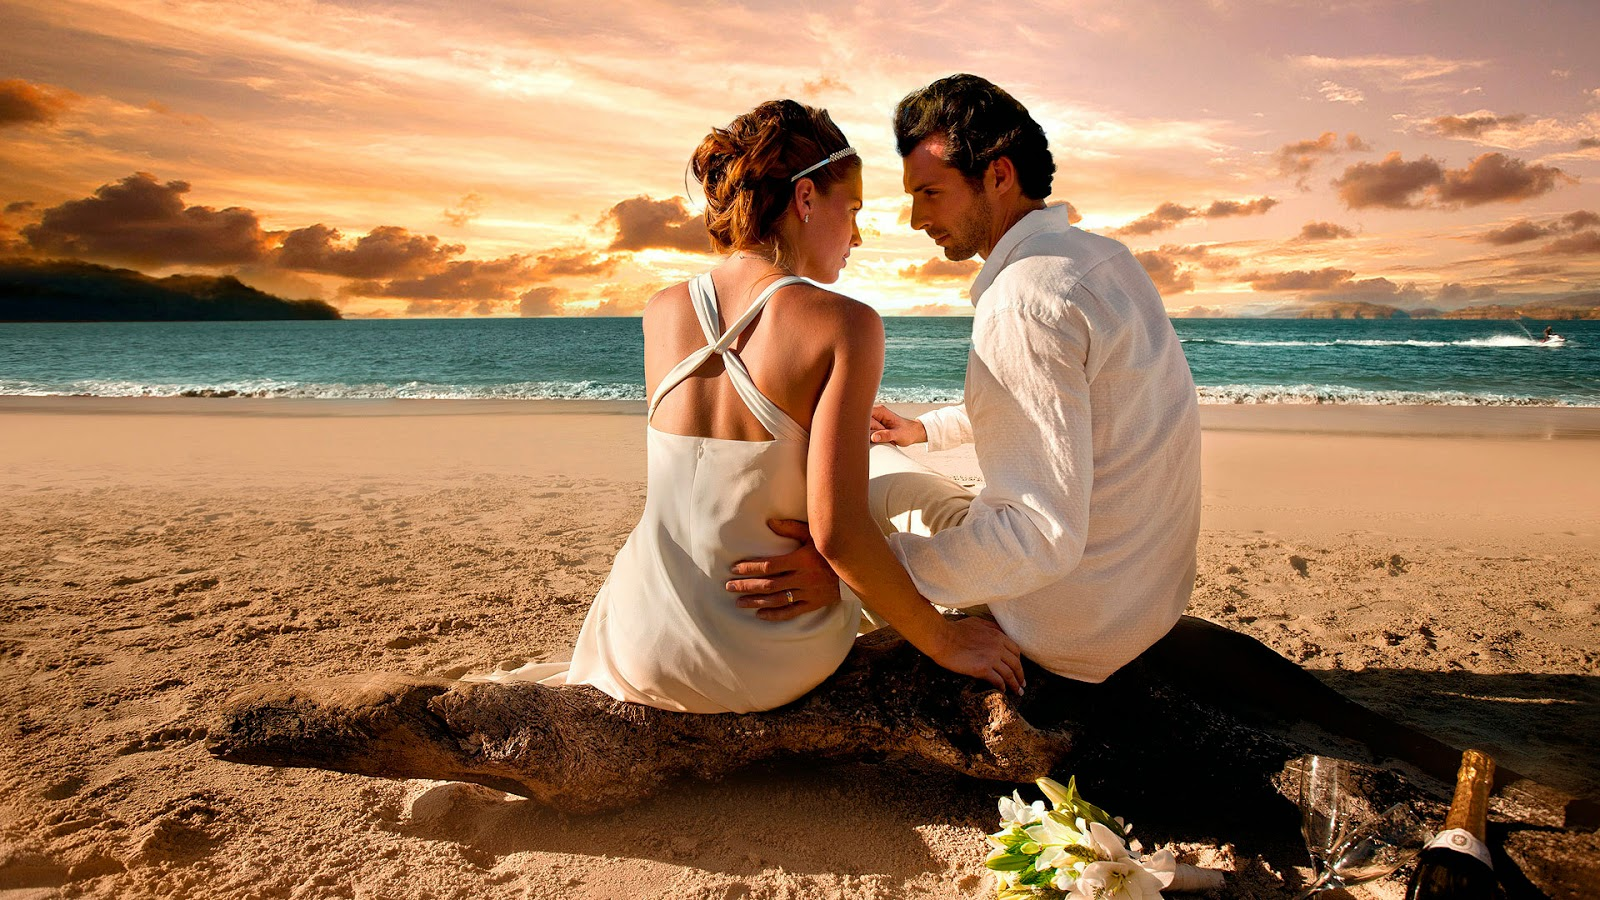 Couples in Love at the Beach, part 1